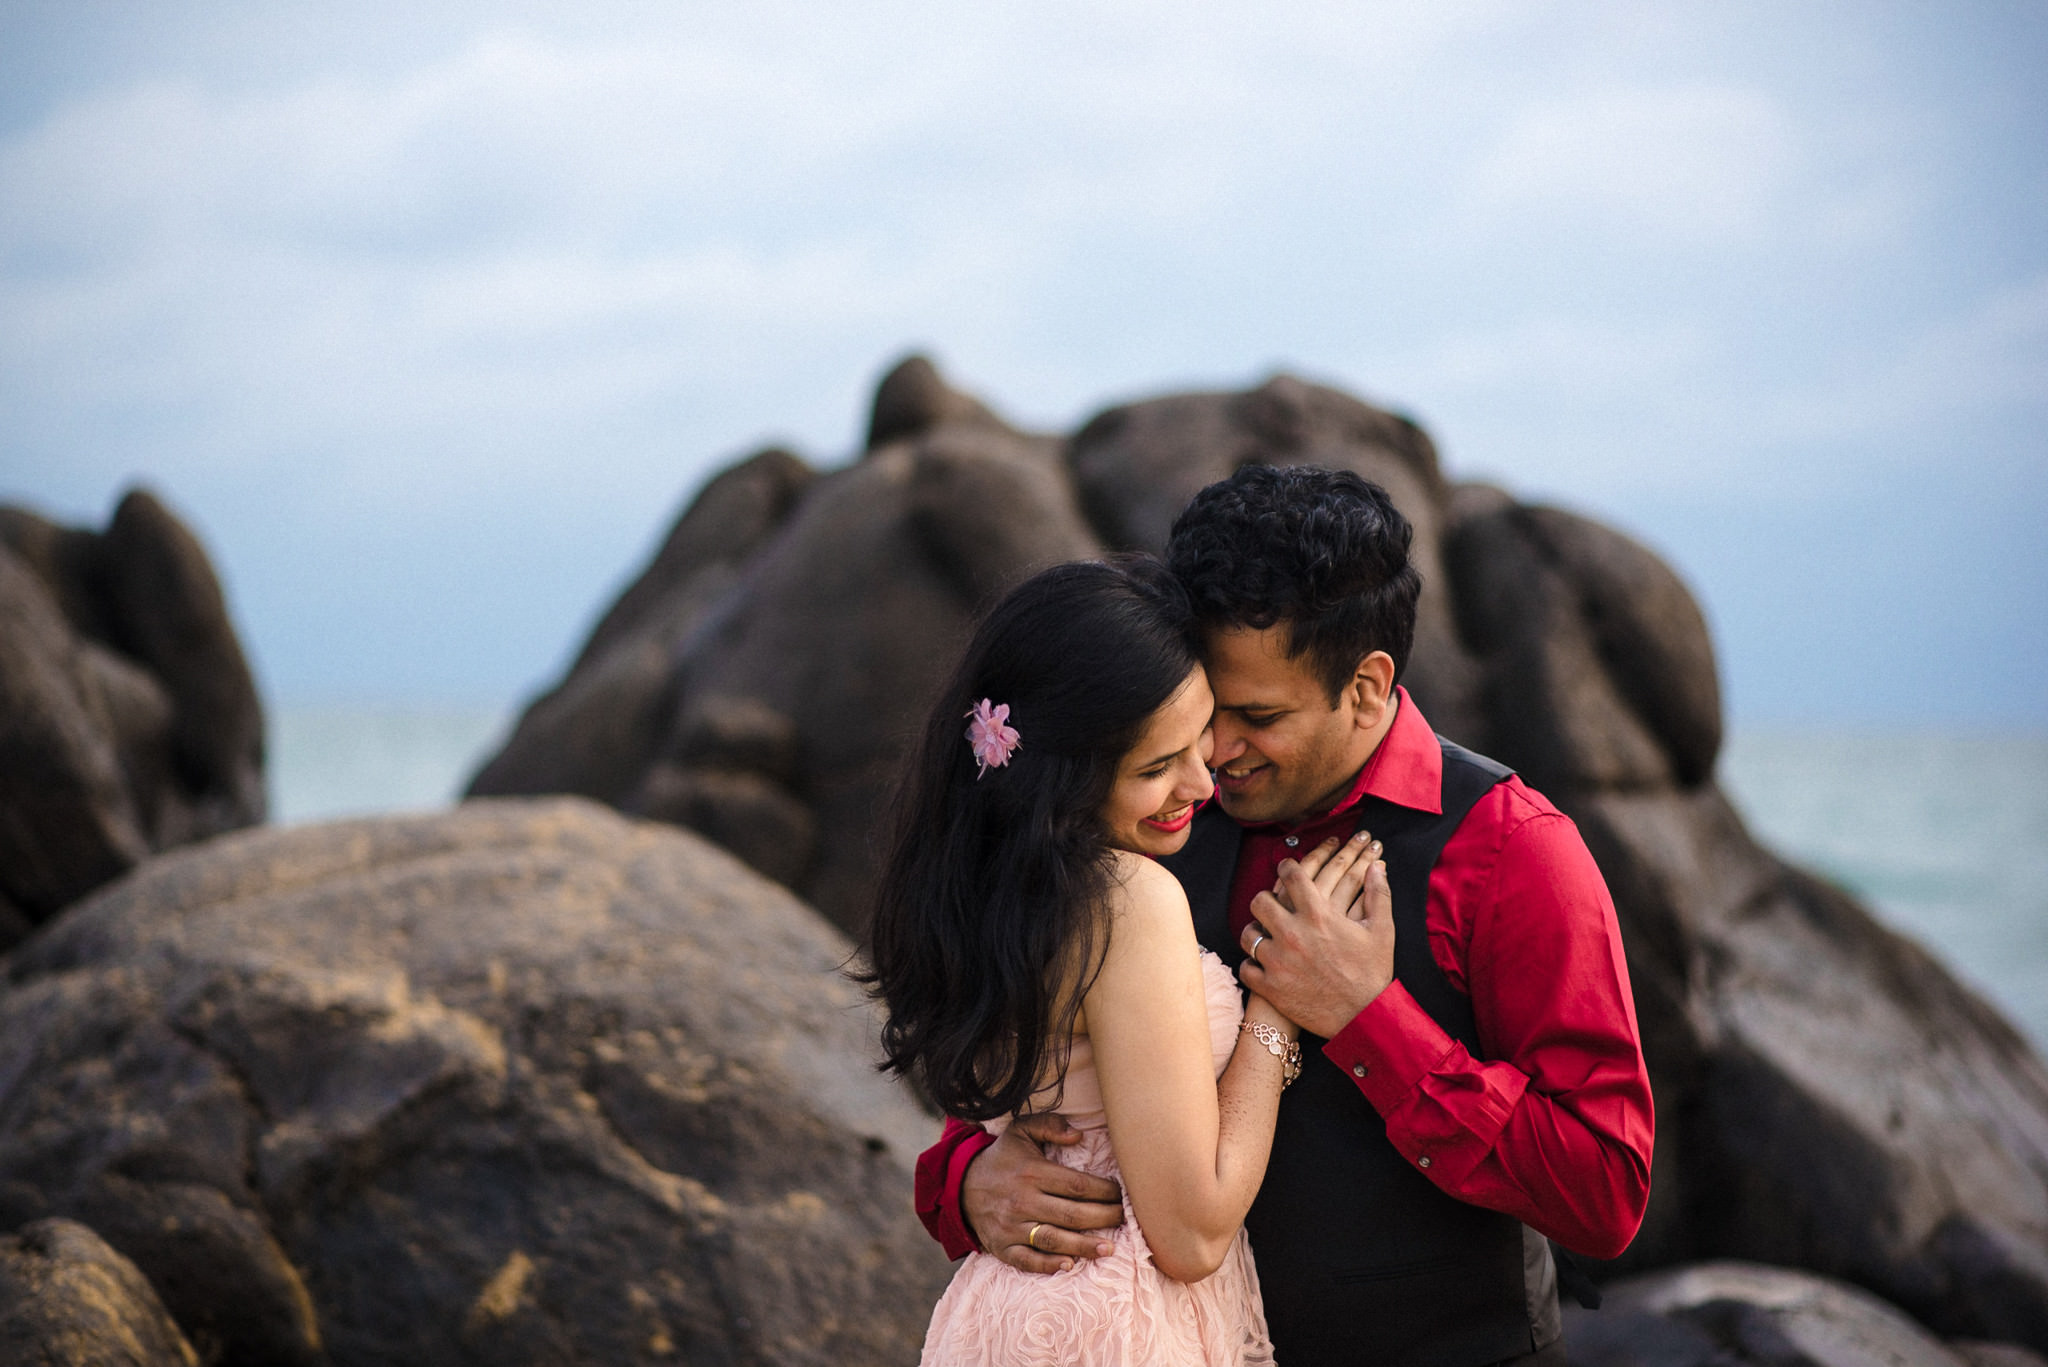 couple-outdoor-shoot-chennai_002.jpg